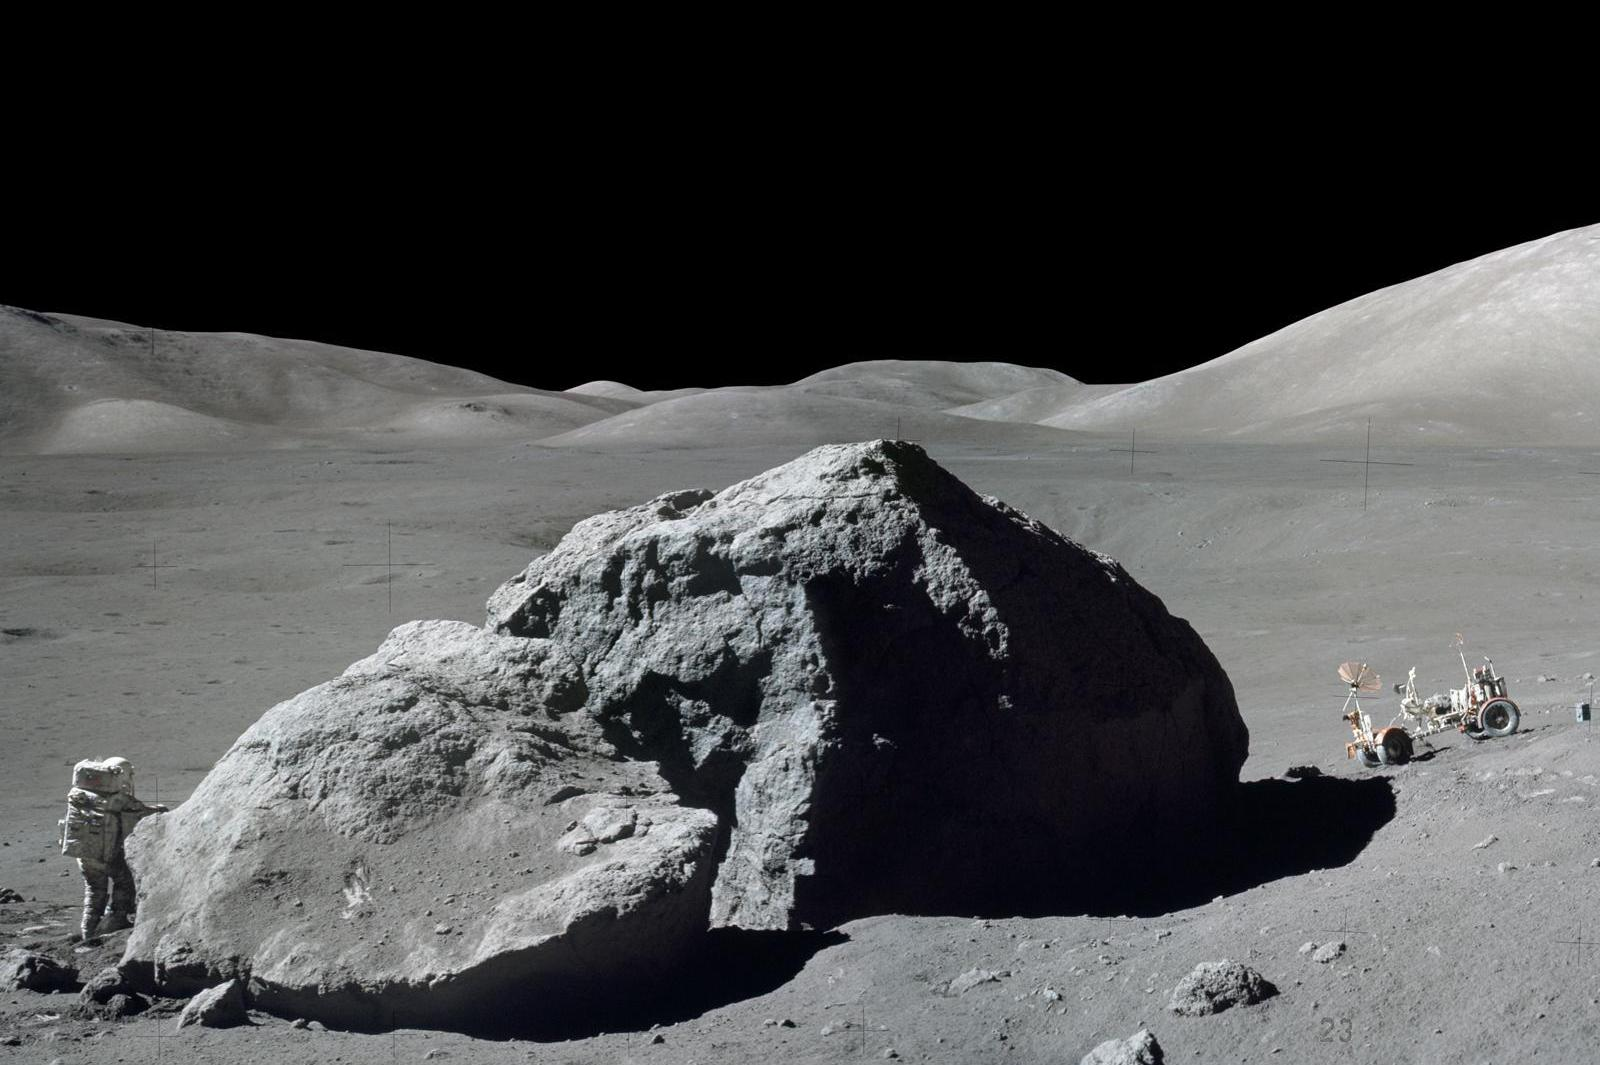 Schmitt is photographed standing next to a huge, split lunar boulder at the Taurus-Littrow landing site. The lunar roving vehicle is visible in the background. This photo is made from two frames from one of Apollo 17's cameras.